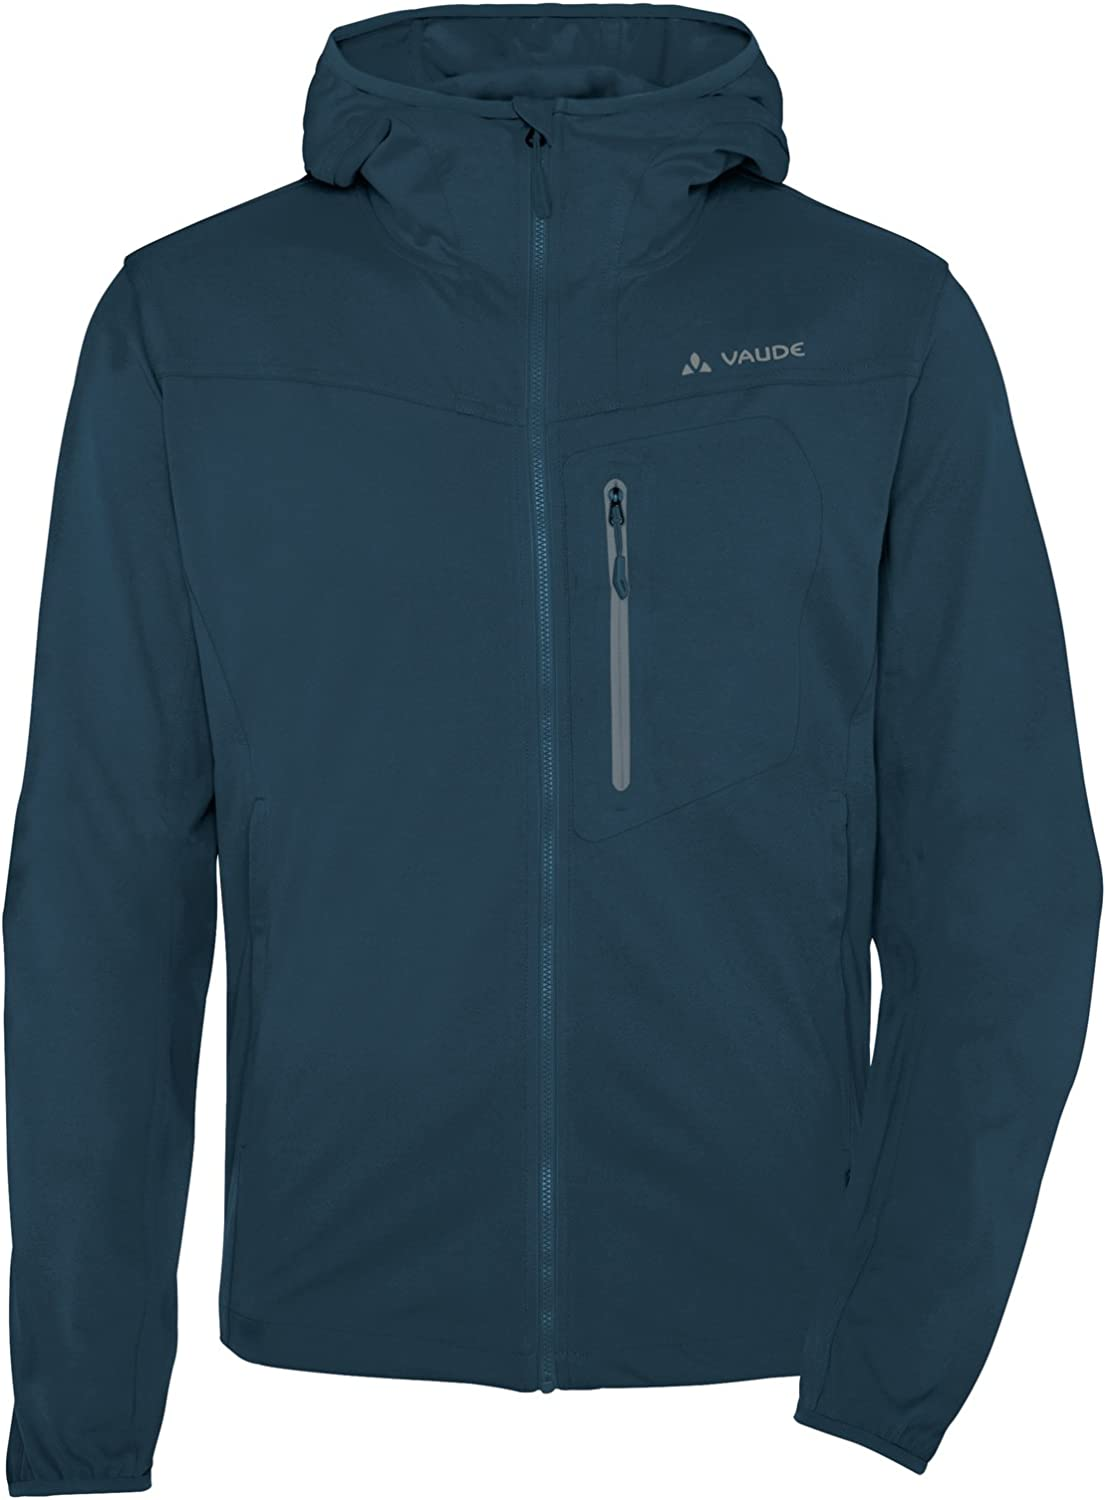 VAUDE Max 40% OFF excellence Men's Durance Jacket Hooded